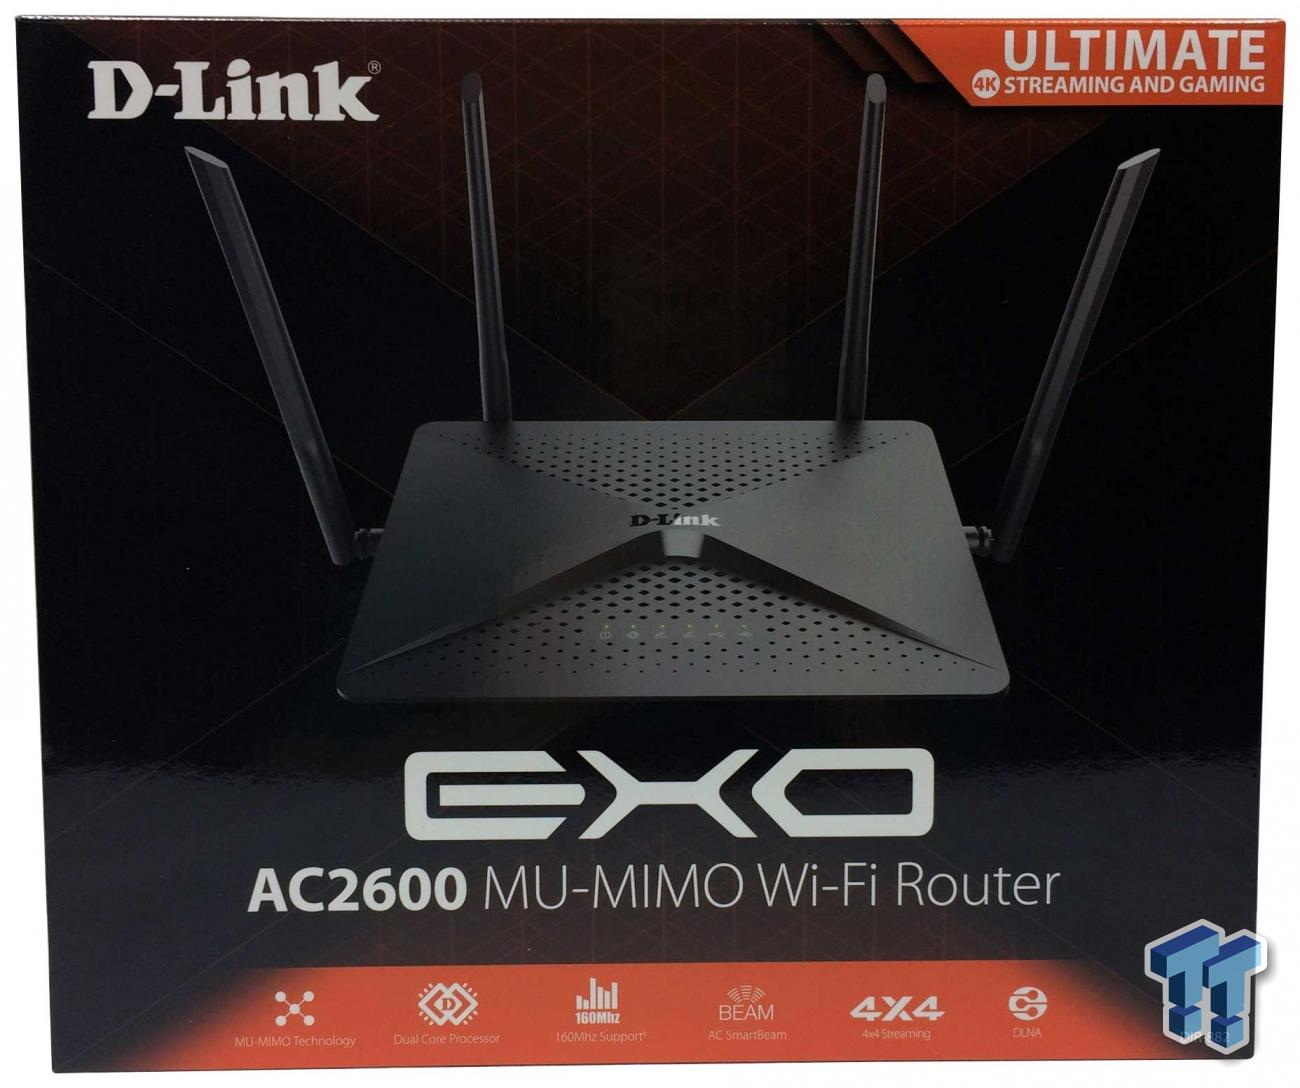 DIR-882-US D-Link EXO AC2600 MU-MIMO WiFi Router 4x4 Dual Band Wireless Router